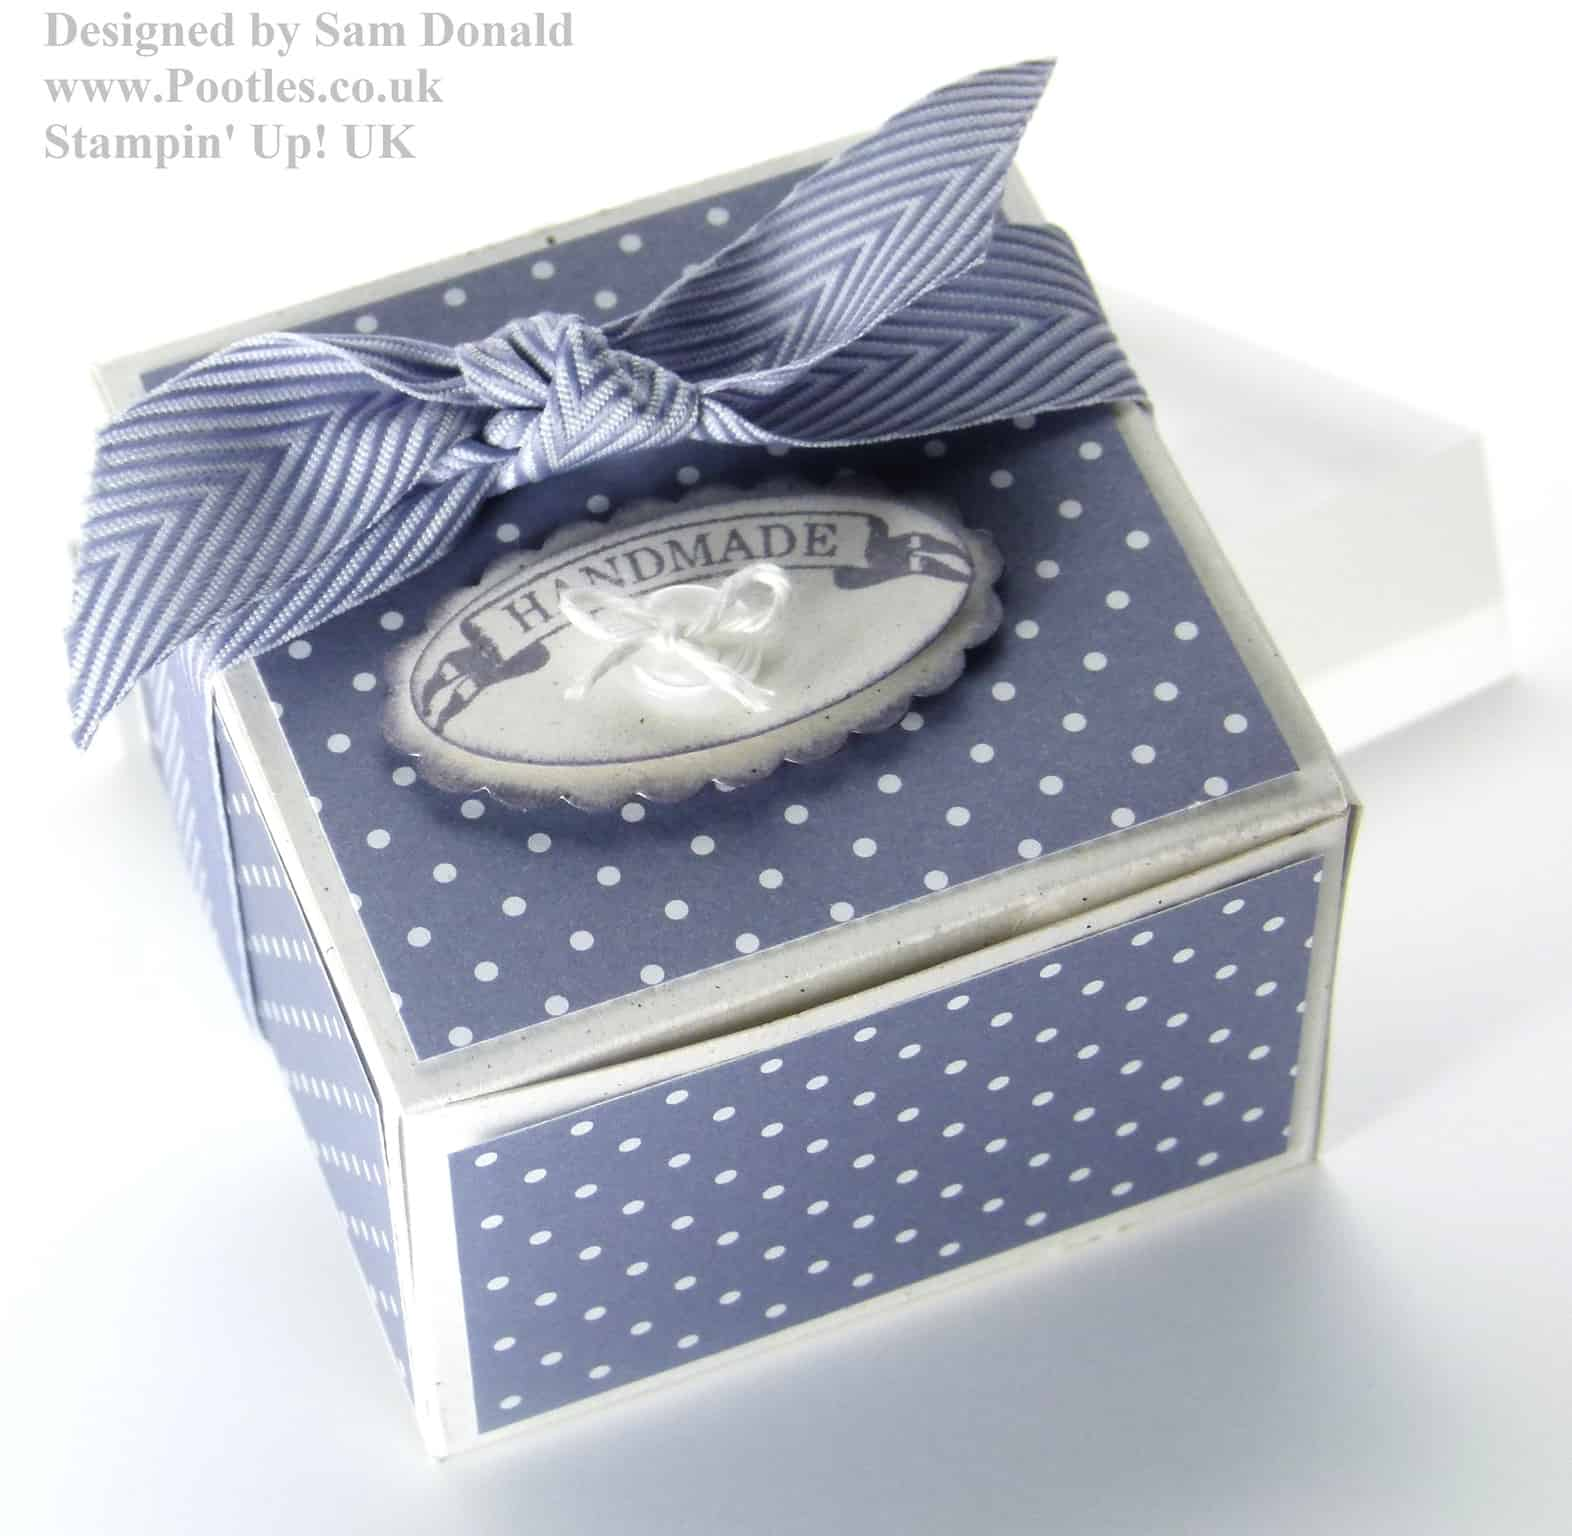 Stampin Up UK Short Fat Candle Gift Box 3